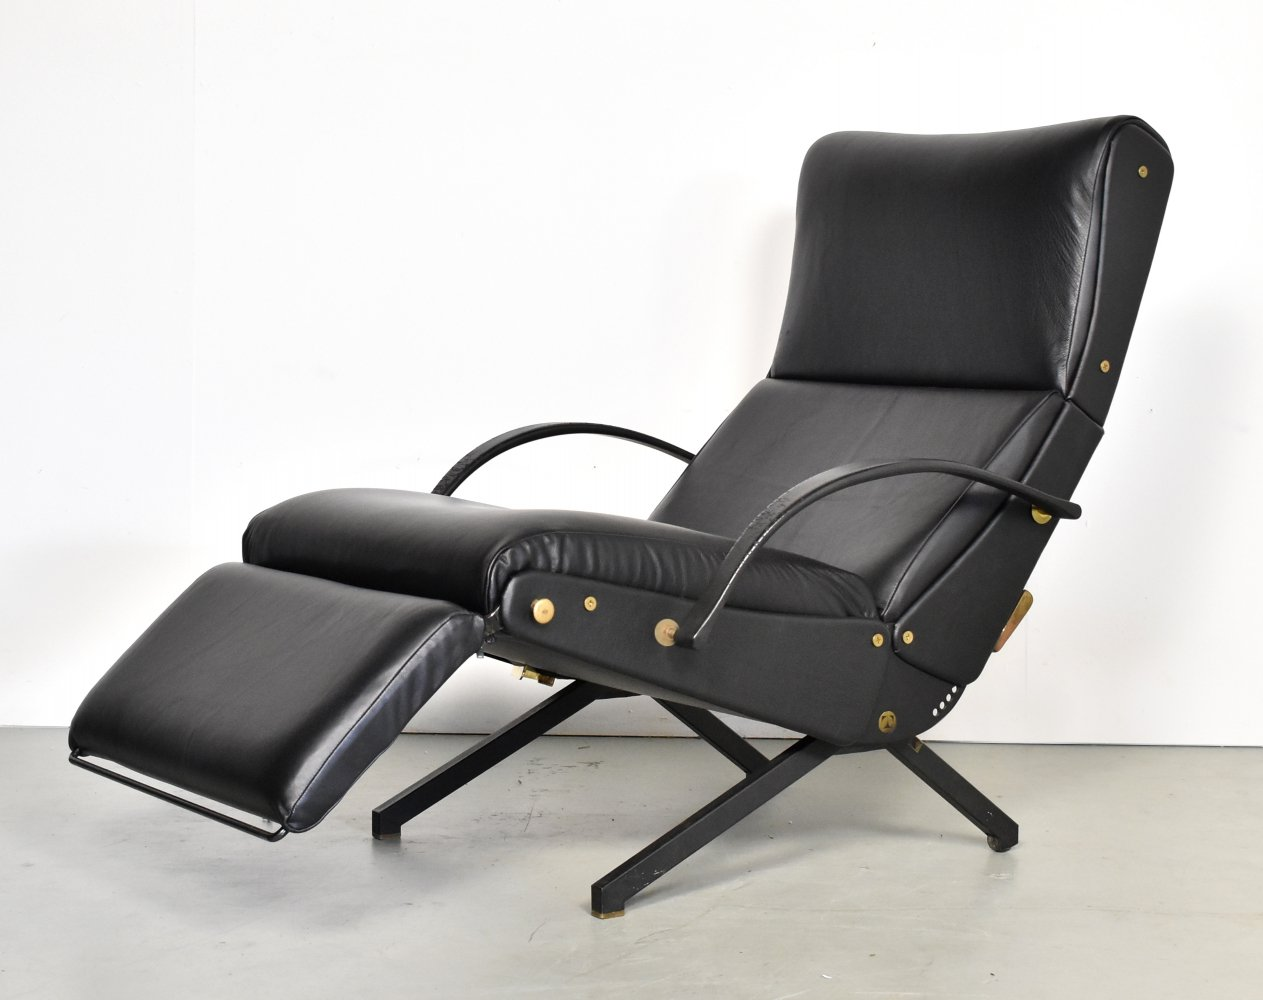 Early P40 Lounge Chair by Osvaldo Borsani for Tecno in black leather, 1950s